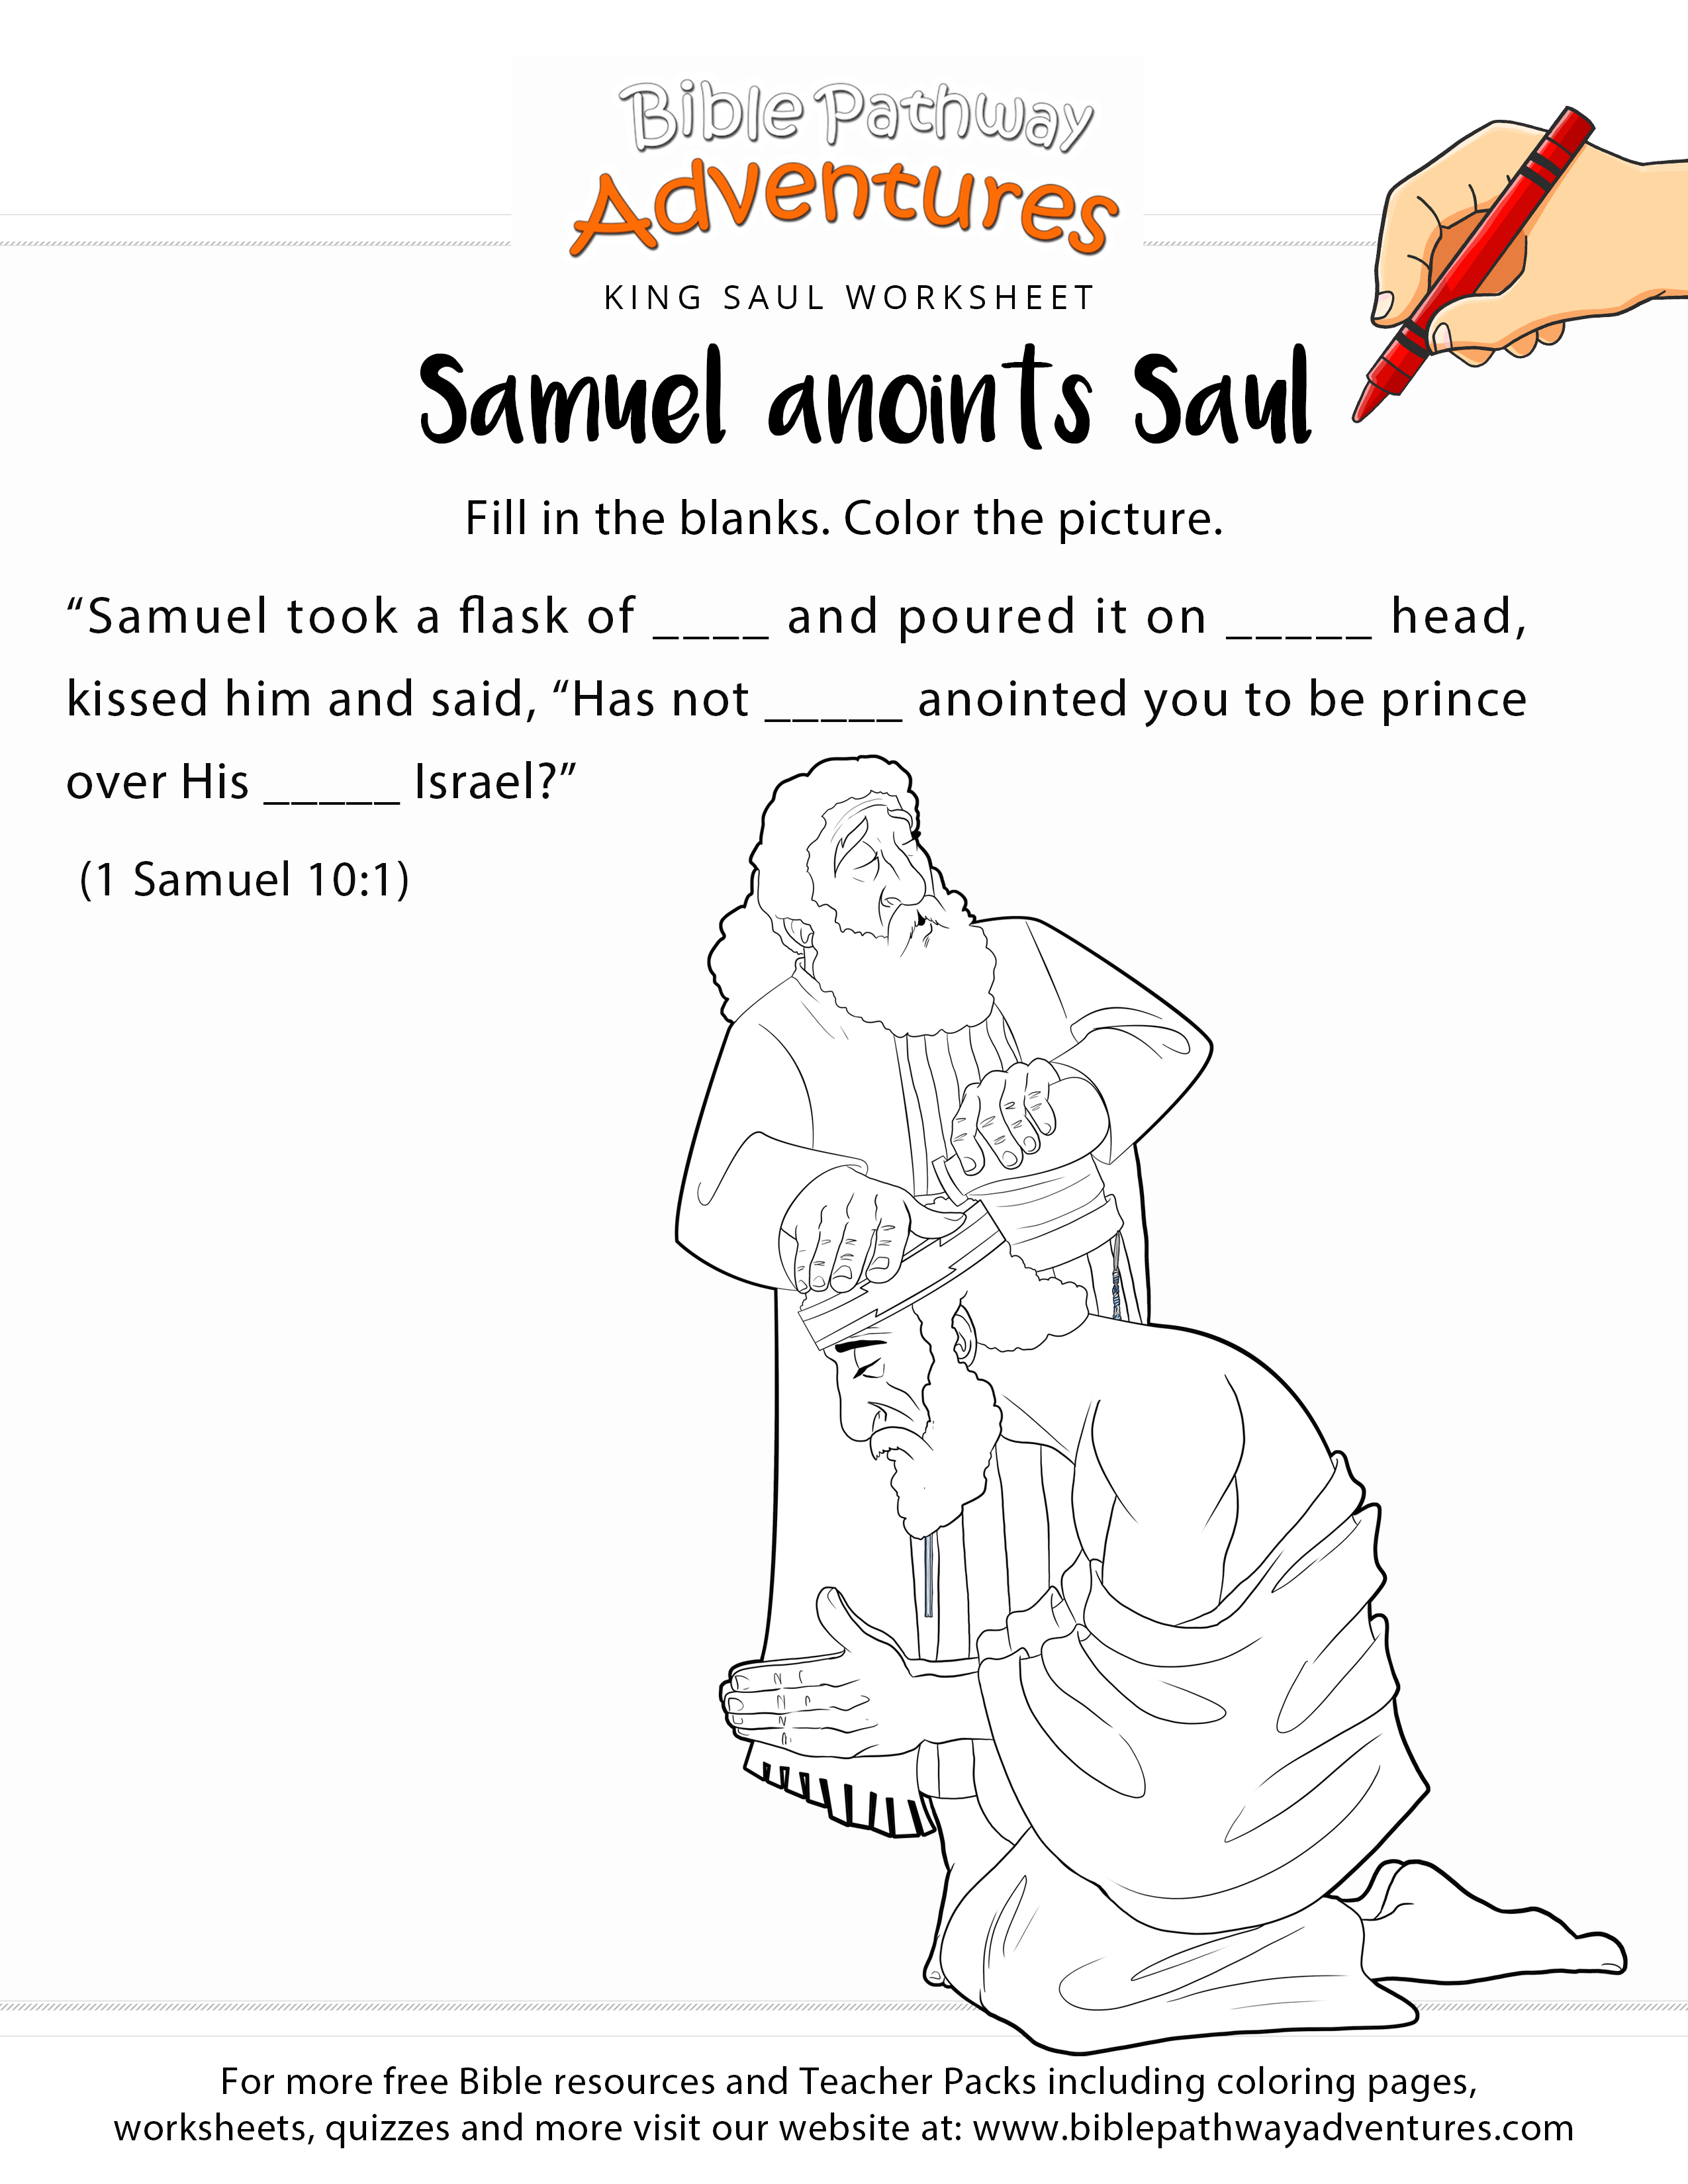 Samuel anoints King Saul worksheet & coloring page | Sunday school ...